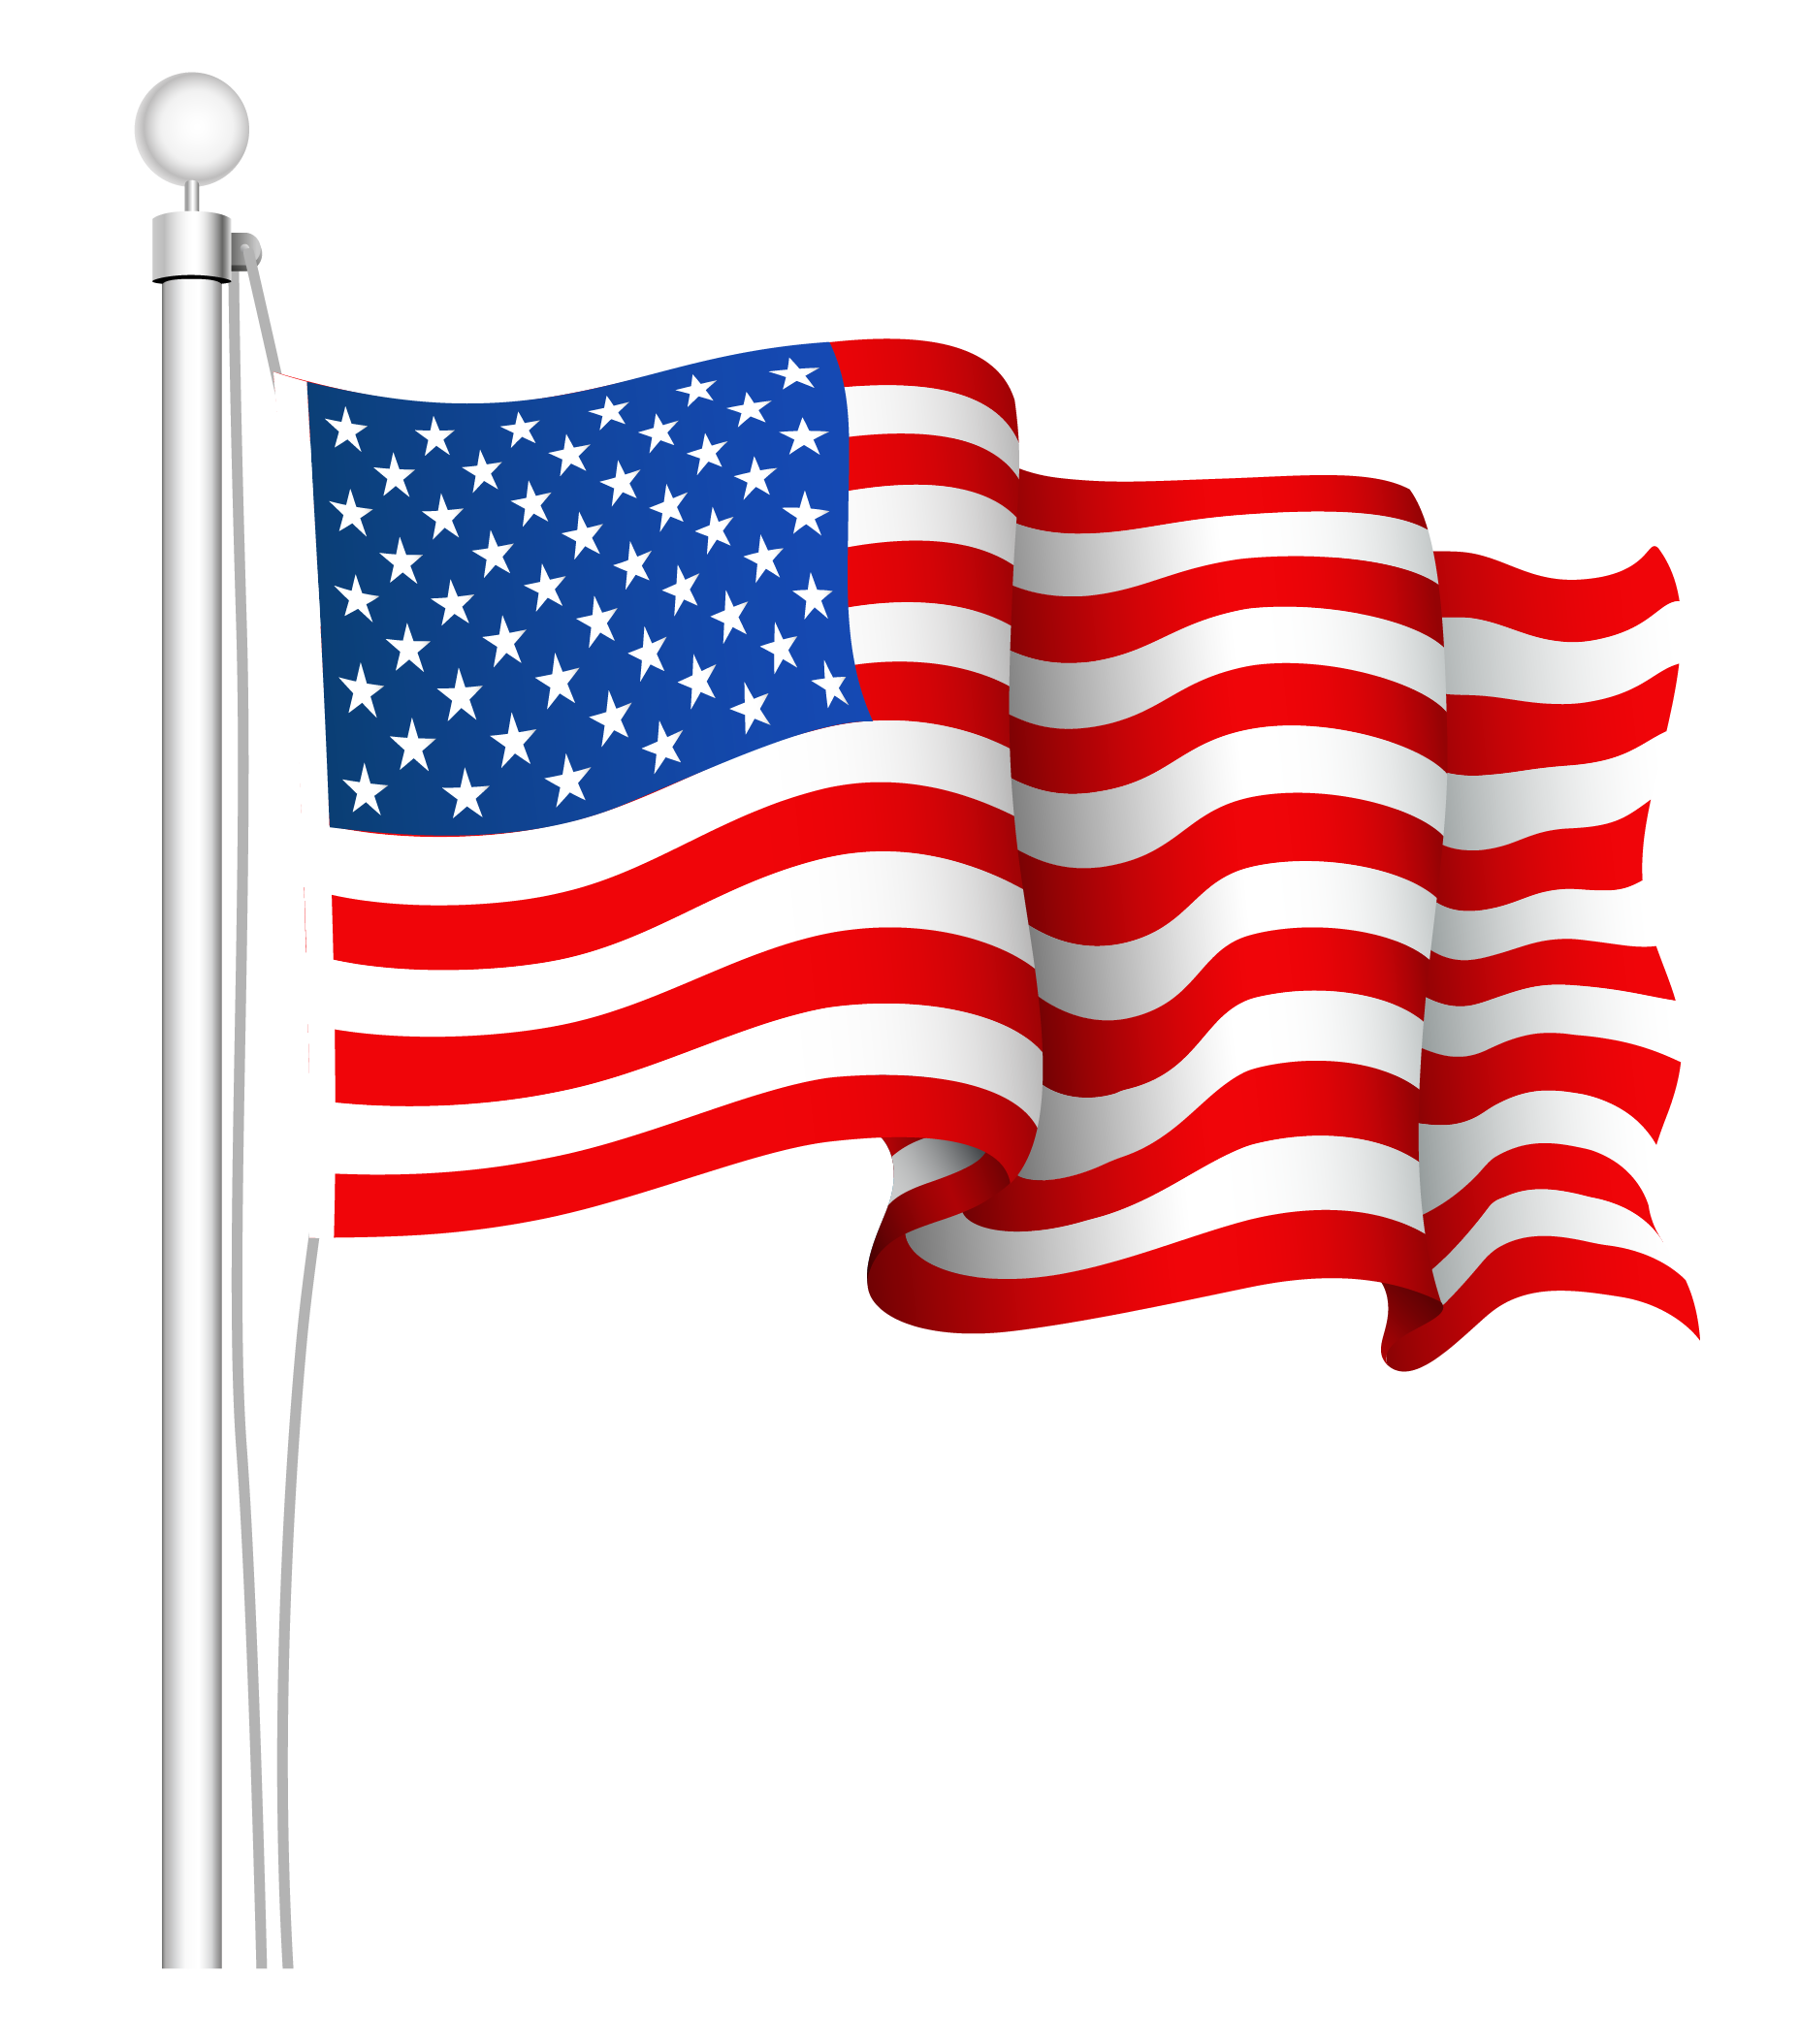 United States Flag Clip Art Cliparts Co-United States Flag Clip Art Cliparts Co-5